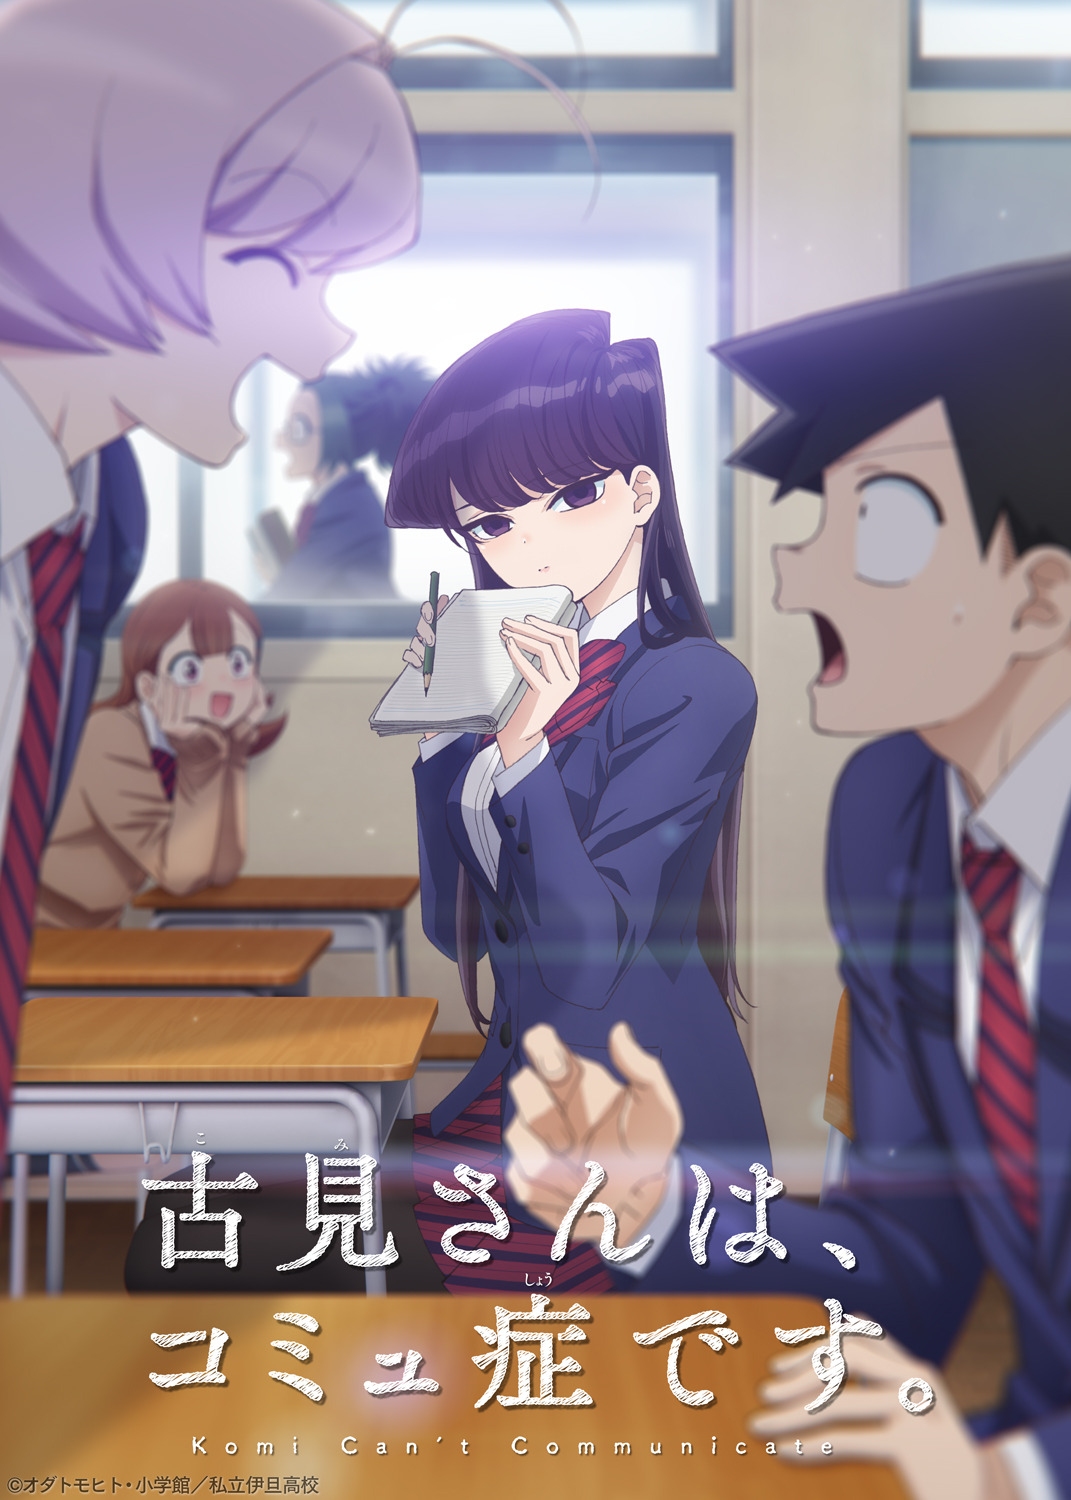 Komi Can't Communicate anime confirmed